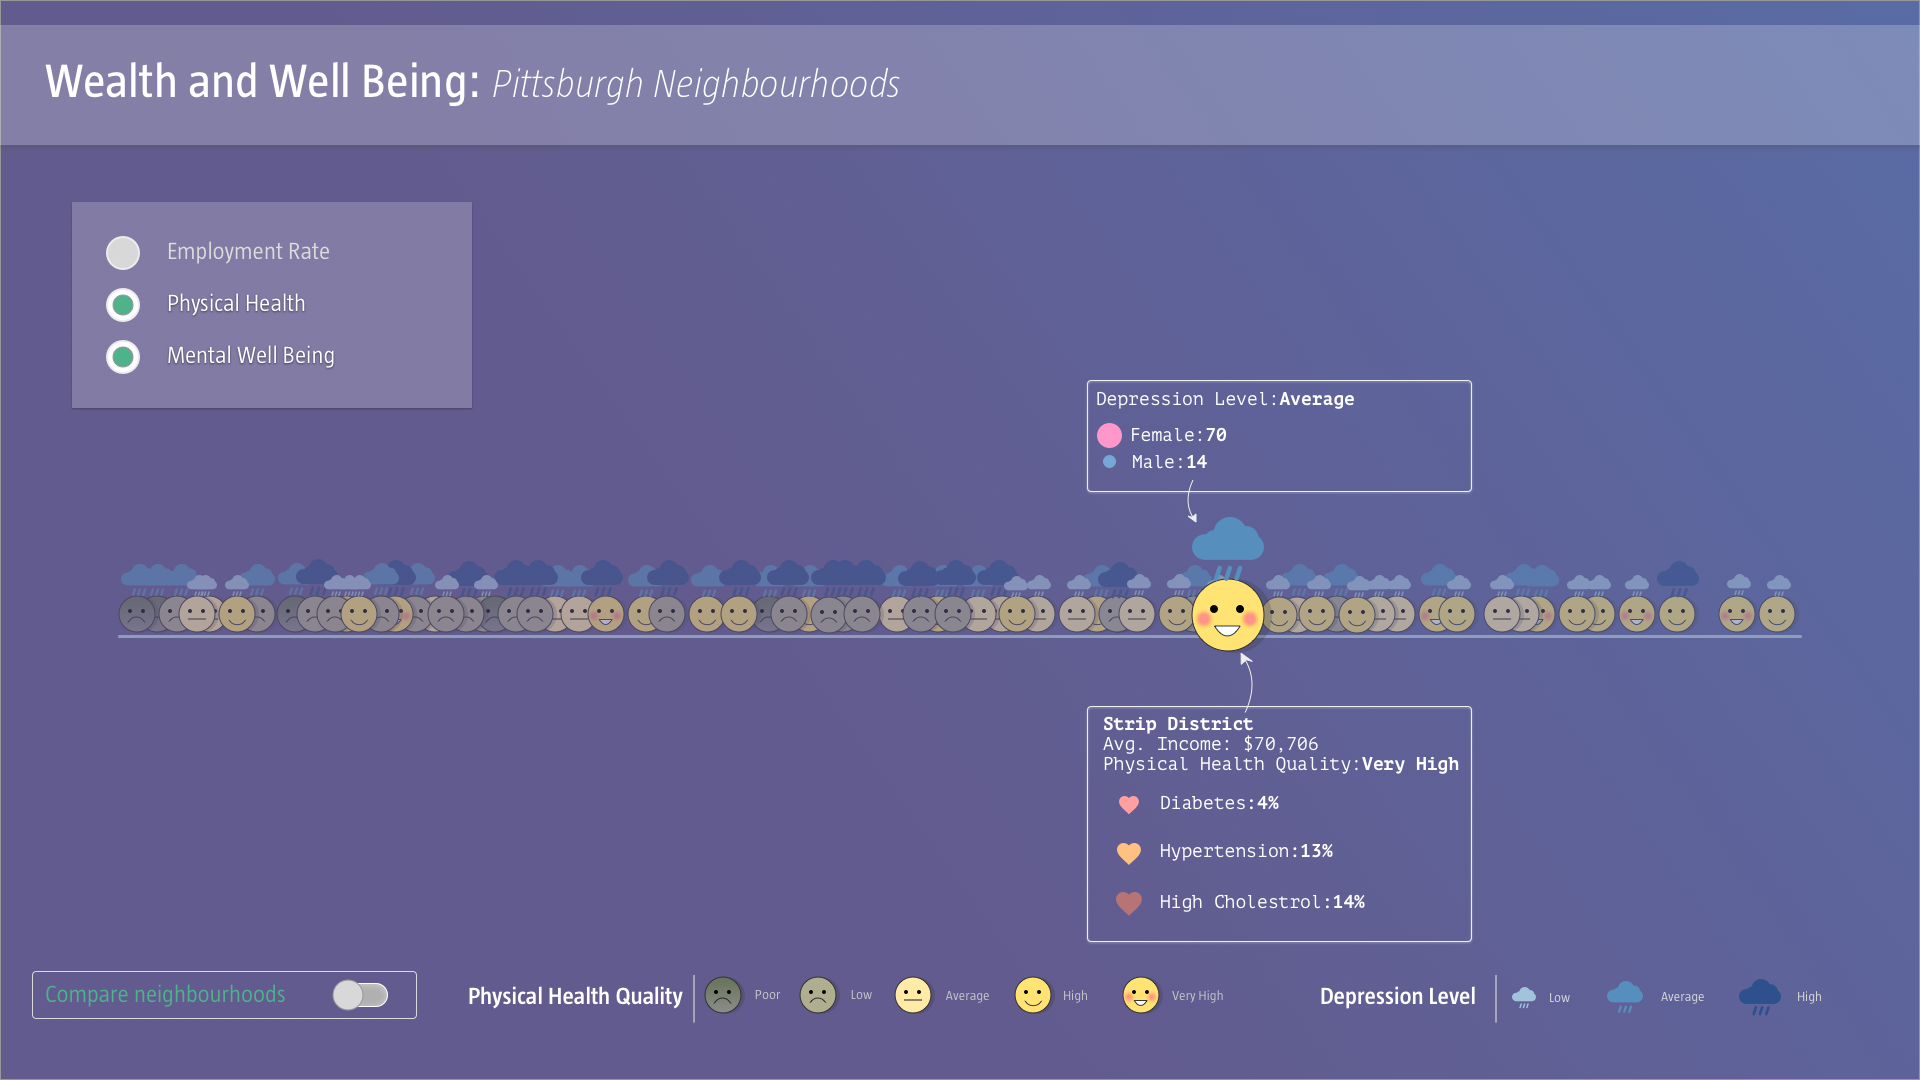 Throughout the process, one can click on any neighborhood to see quantitative information.